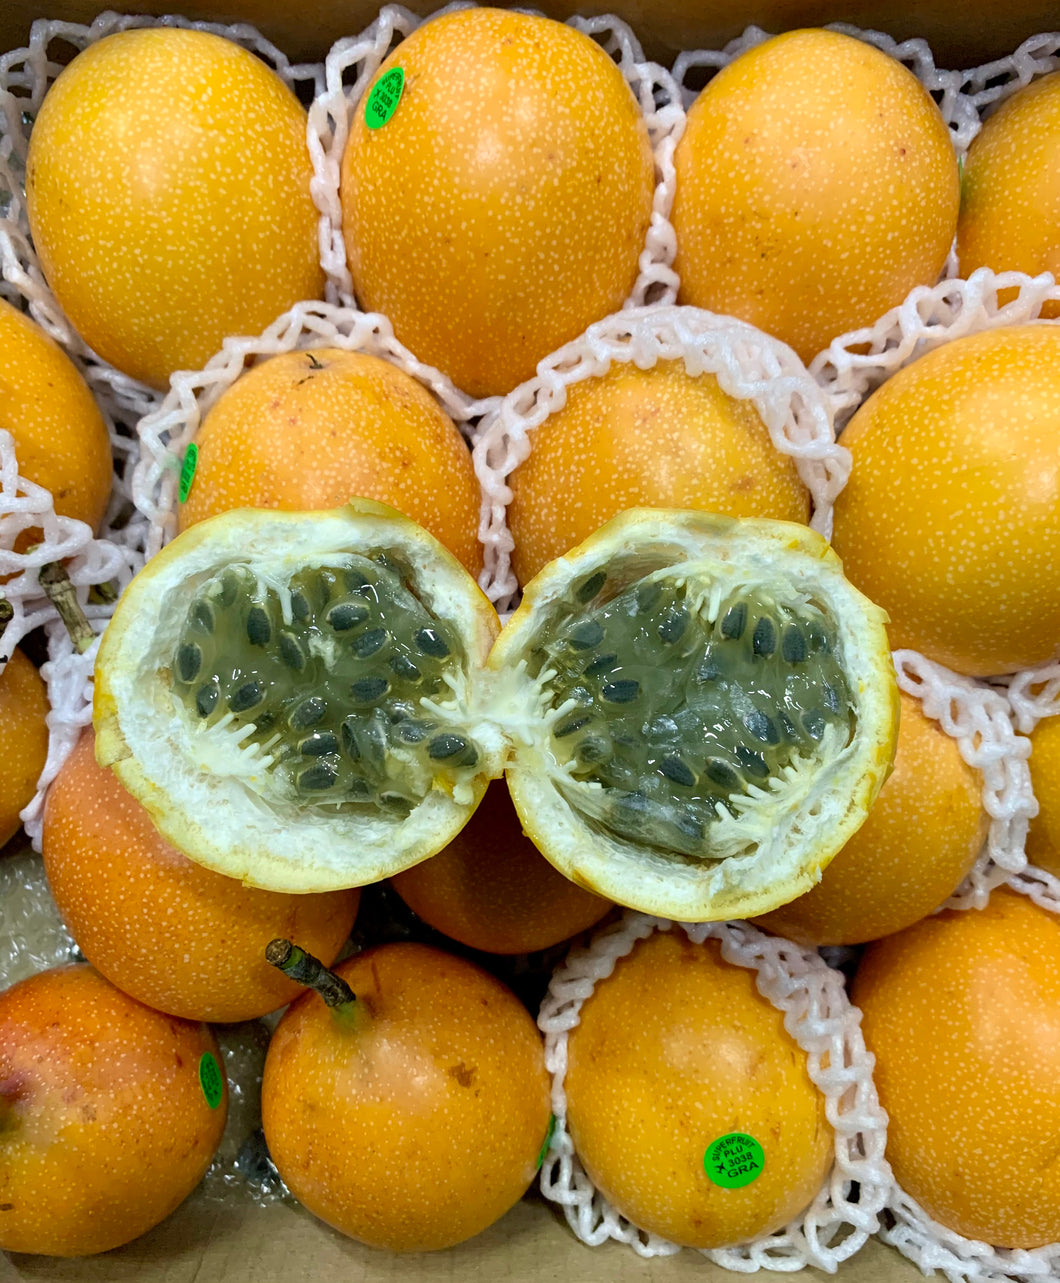 Granadilla, each